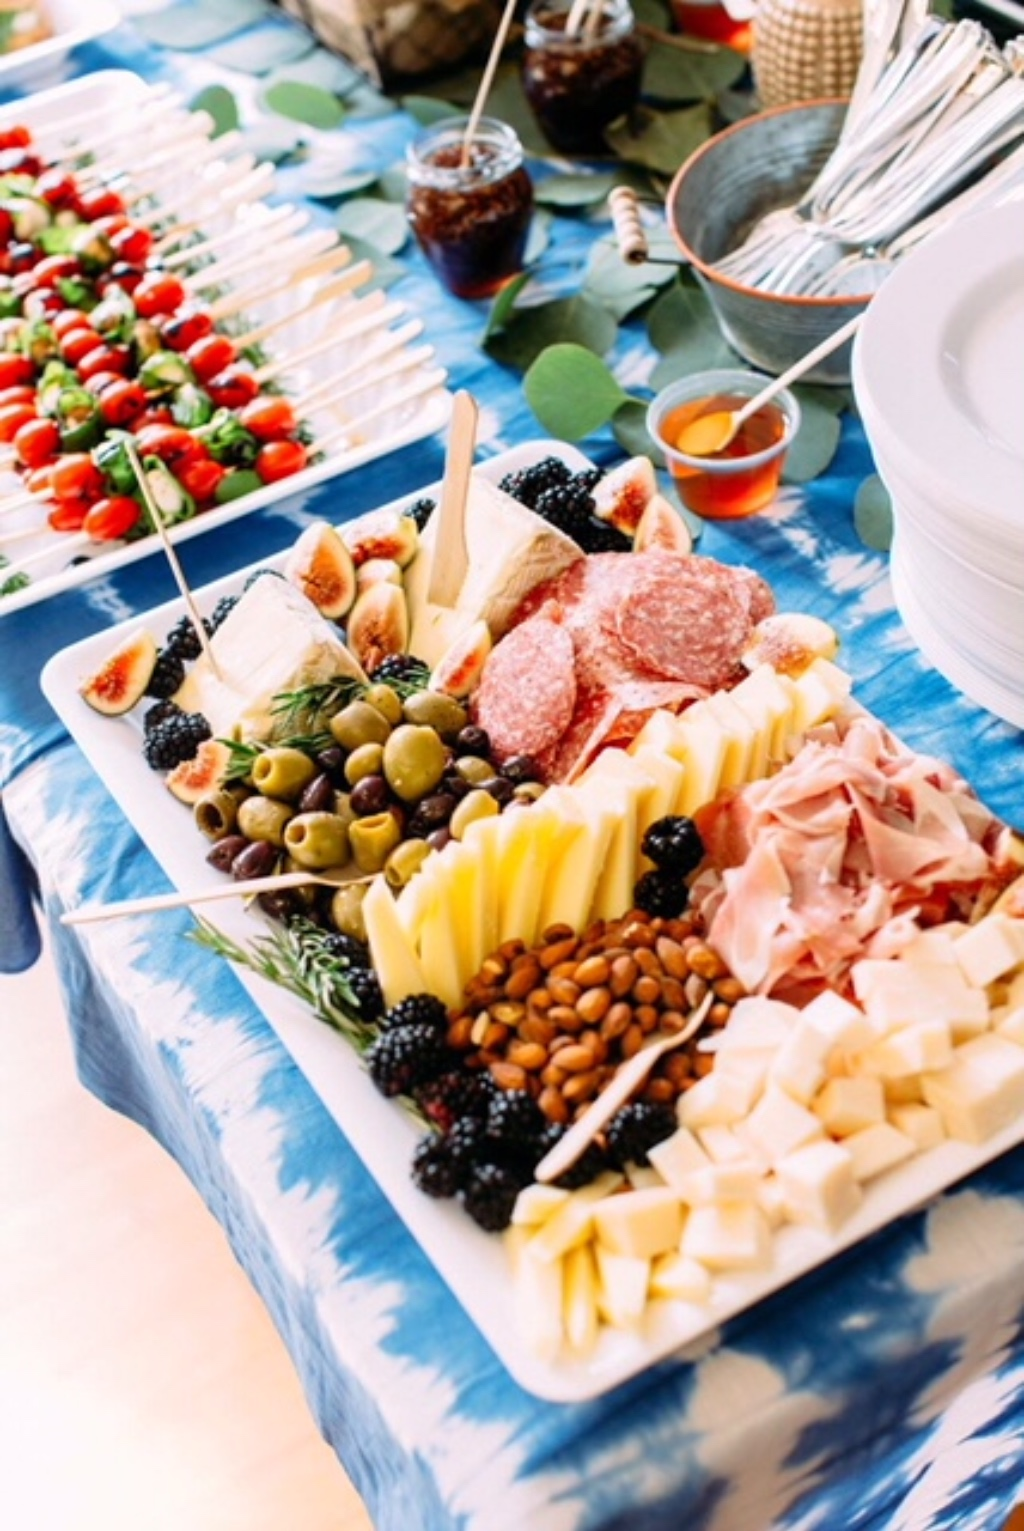 What better way to feed your guests at a bridal shower or cocktail hour than to provide beautiful Cheese Plates & Catering. Our